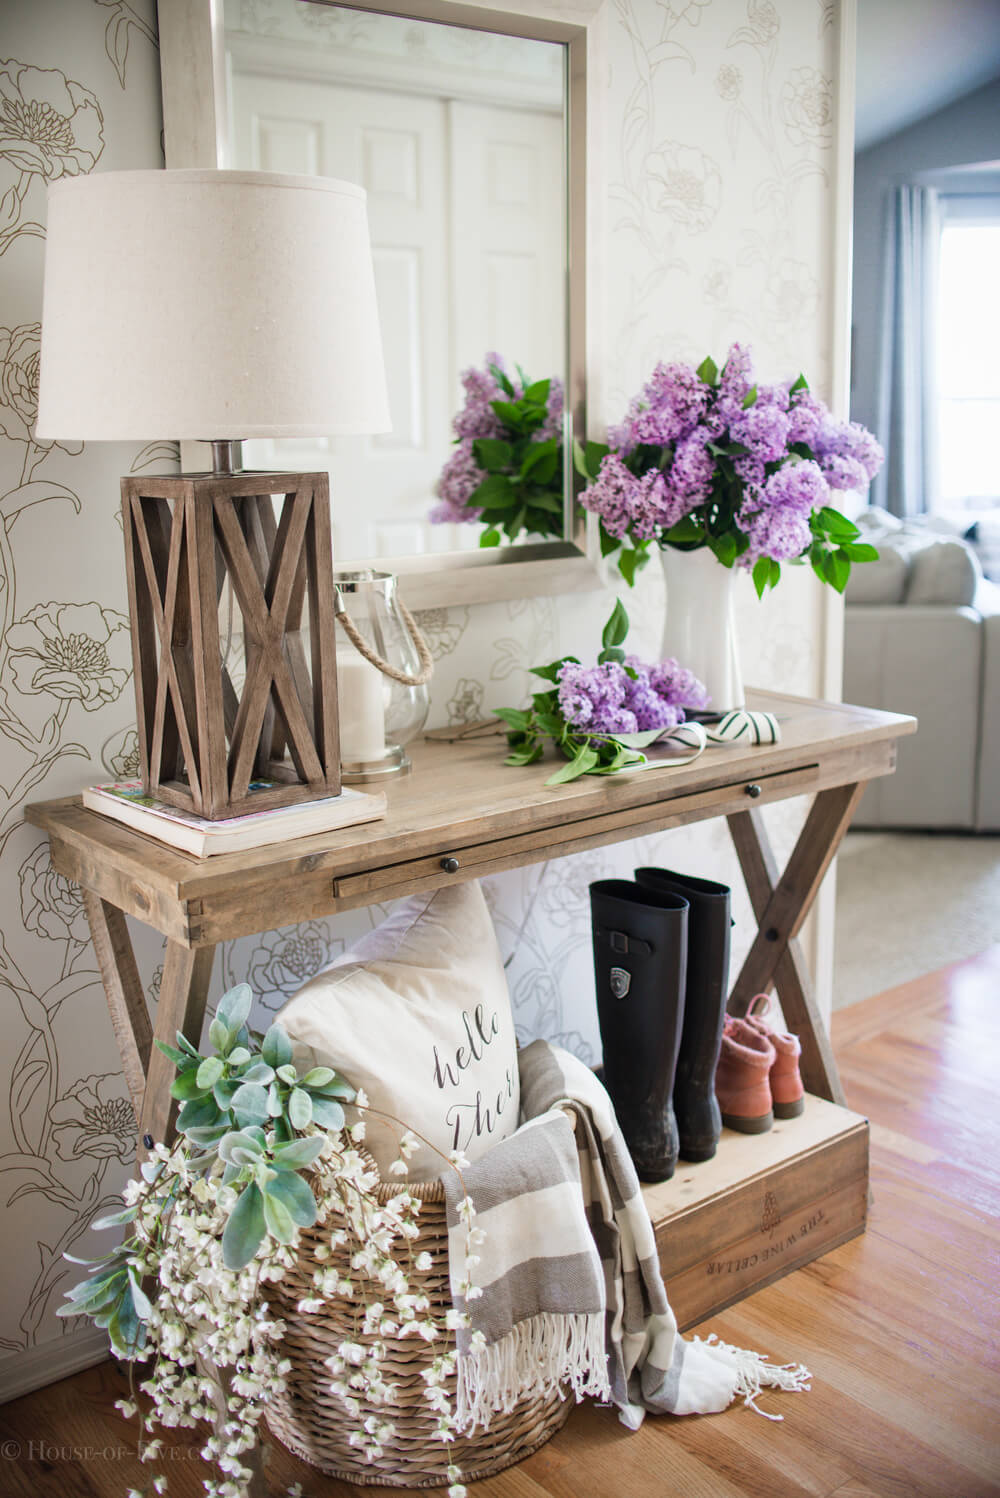 Country Cross Table Holds Lamp and Hydrangeas